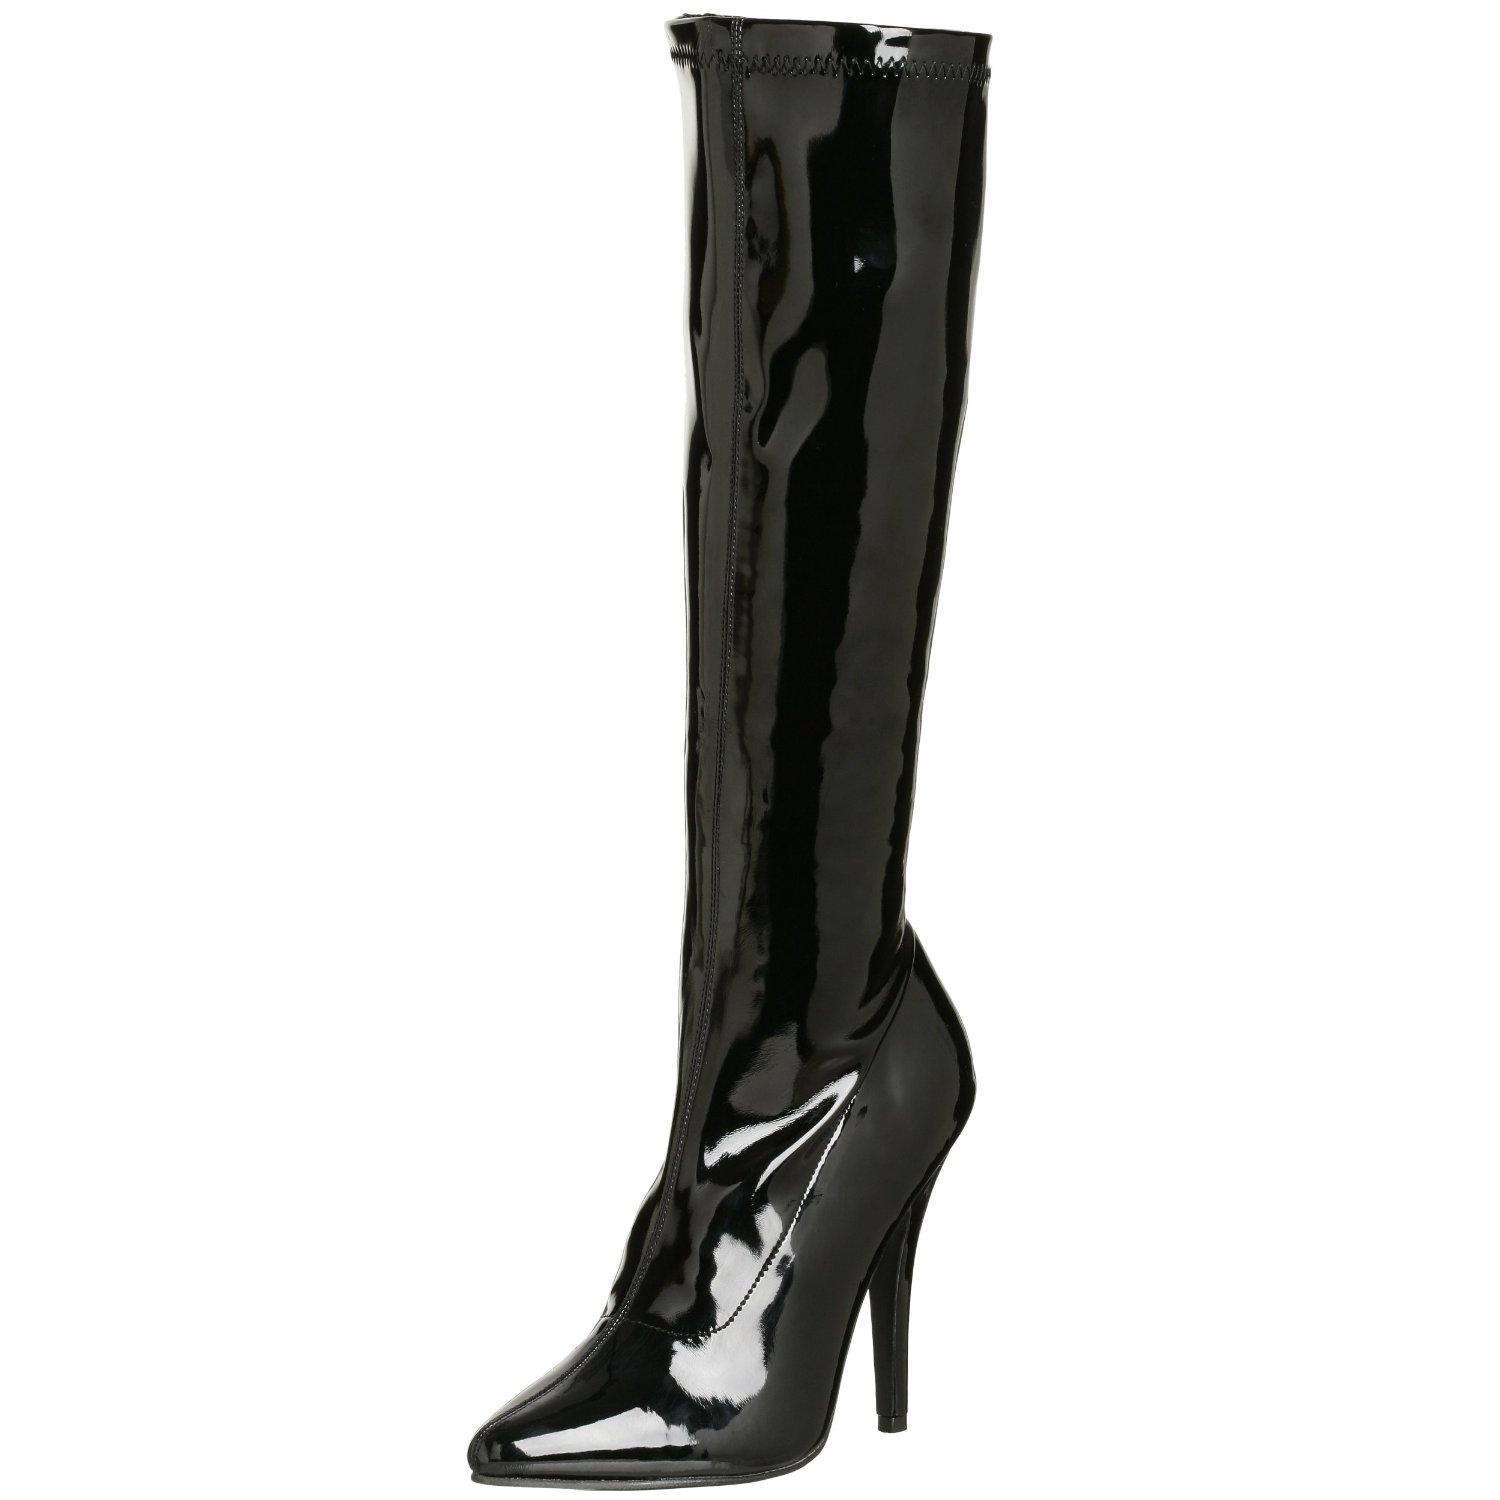 Women's boots are the perfect addition to any outfit. With countless styles to choose from, such as ankle, mid calf, knee high and thigh high bestyload7od.cf boots are more comfortable but high heel boots are more fashionable.